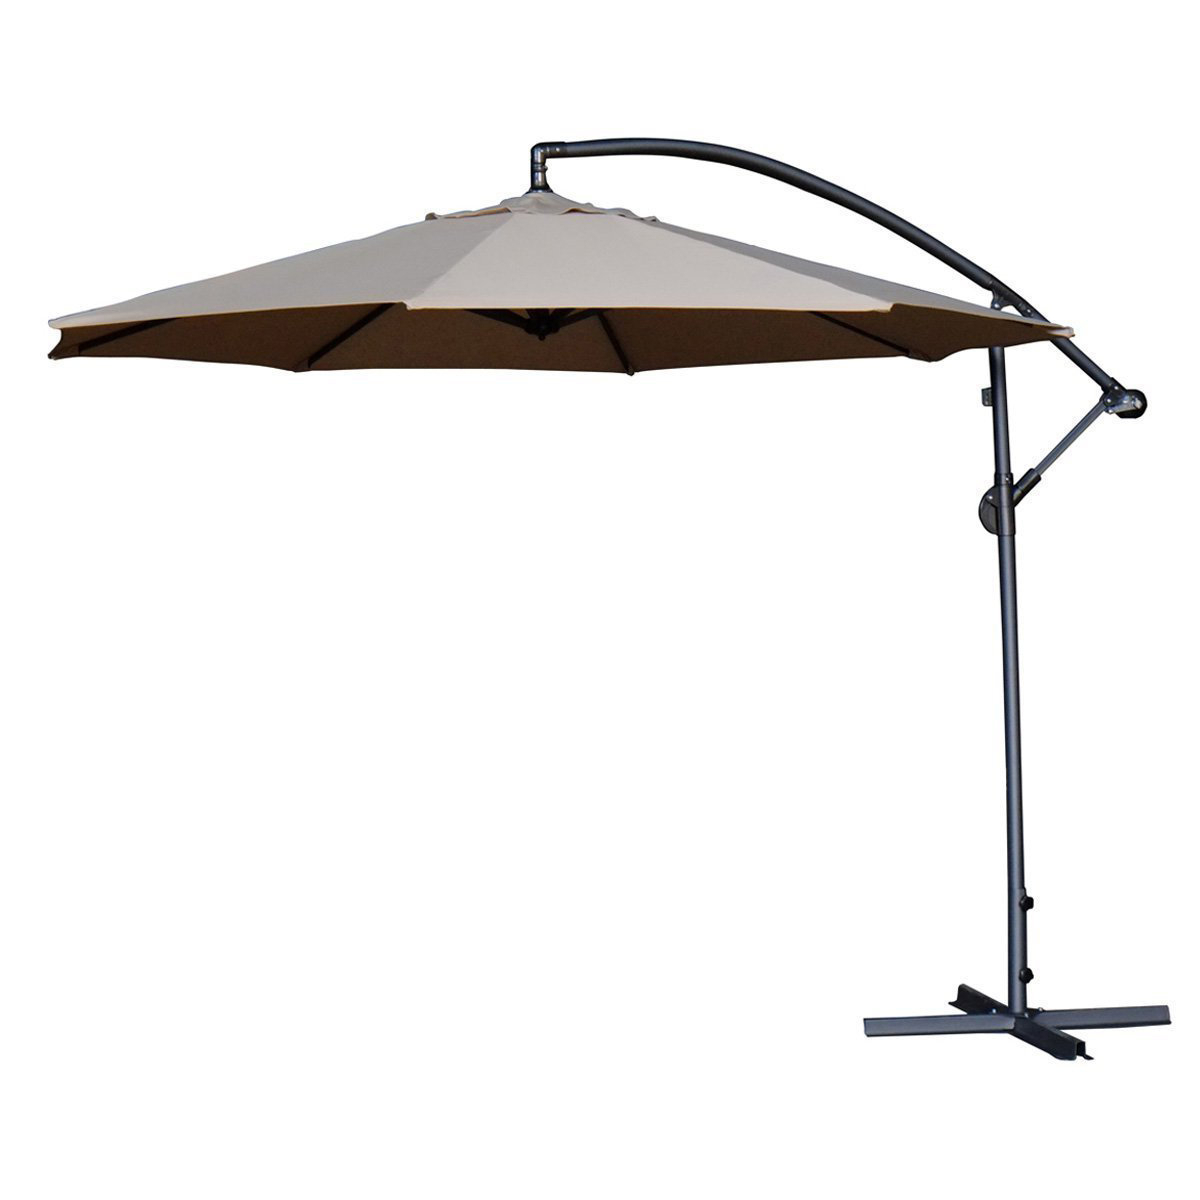 Irven 10' Cantilever Umbrella In Most Current Freda Cantilever Umbrellas (View 13 of 20)